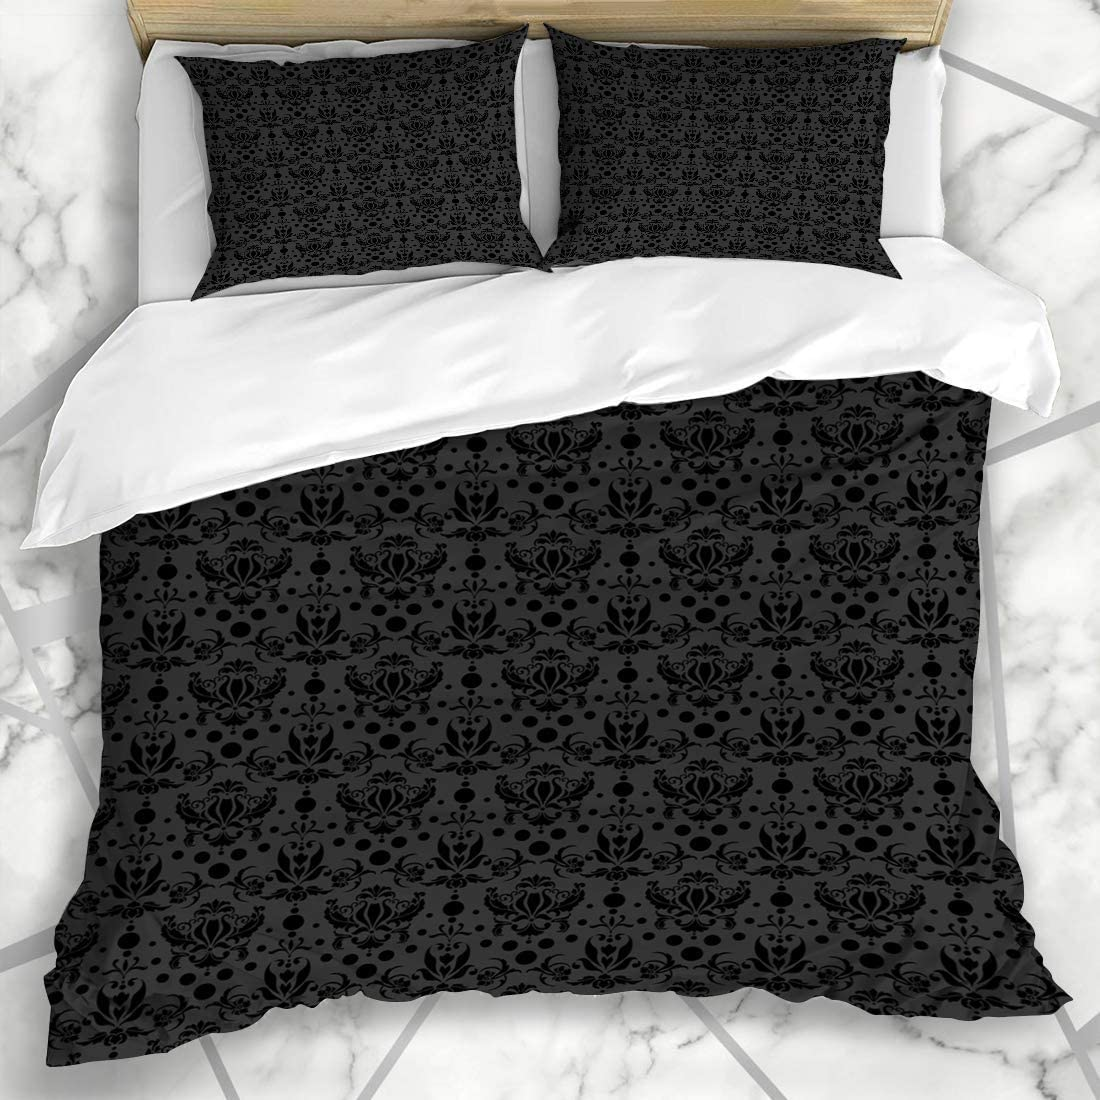 Amazon.com: Qoqon Duvet Cover Sets Rich Gray Pattern Black Damask Abstract  Intricate Antique Baroque Brocade Charcoal Old Microfiber Bedding with 2  Pillow Shams: Home & Kitchen